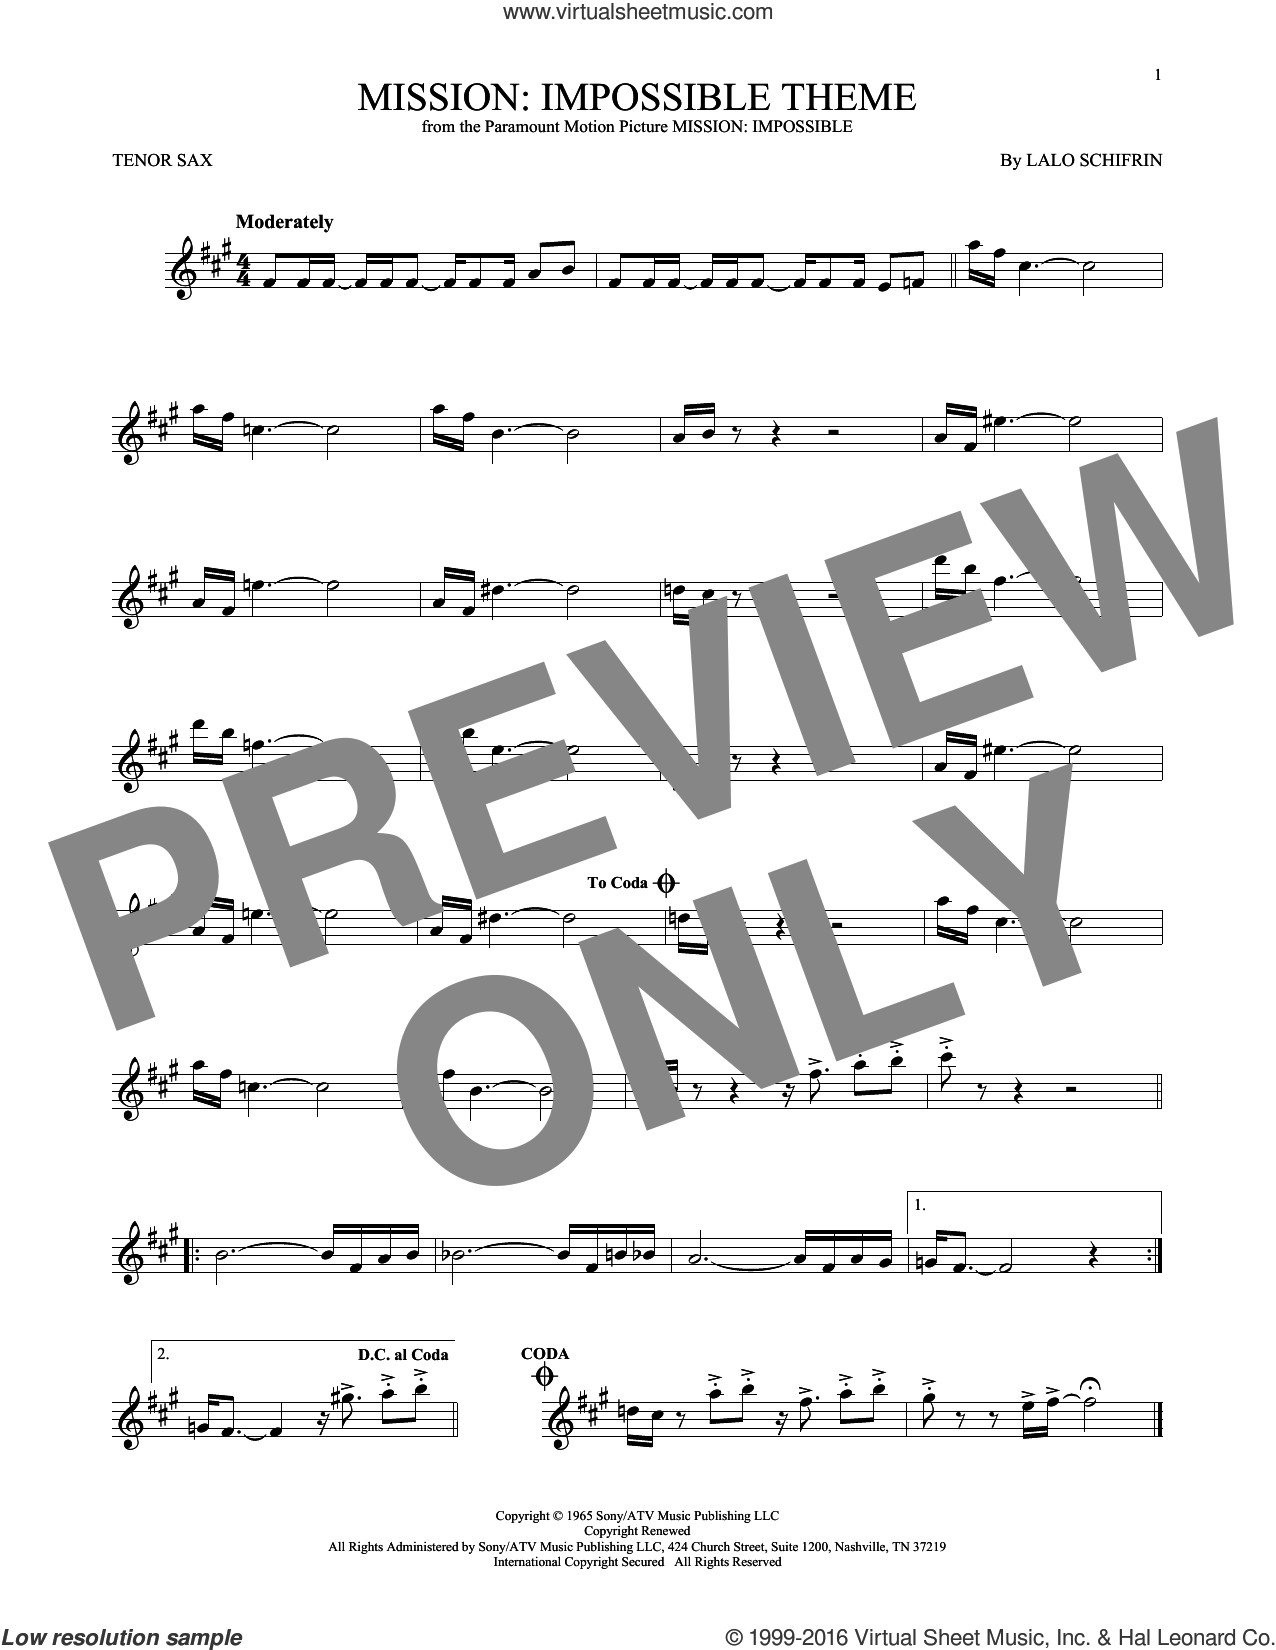 Mission: Impossible Theme sheet music for tenor saxophone solo by Lalo Schifrin, intermediate skill level